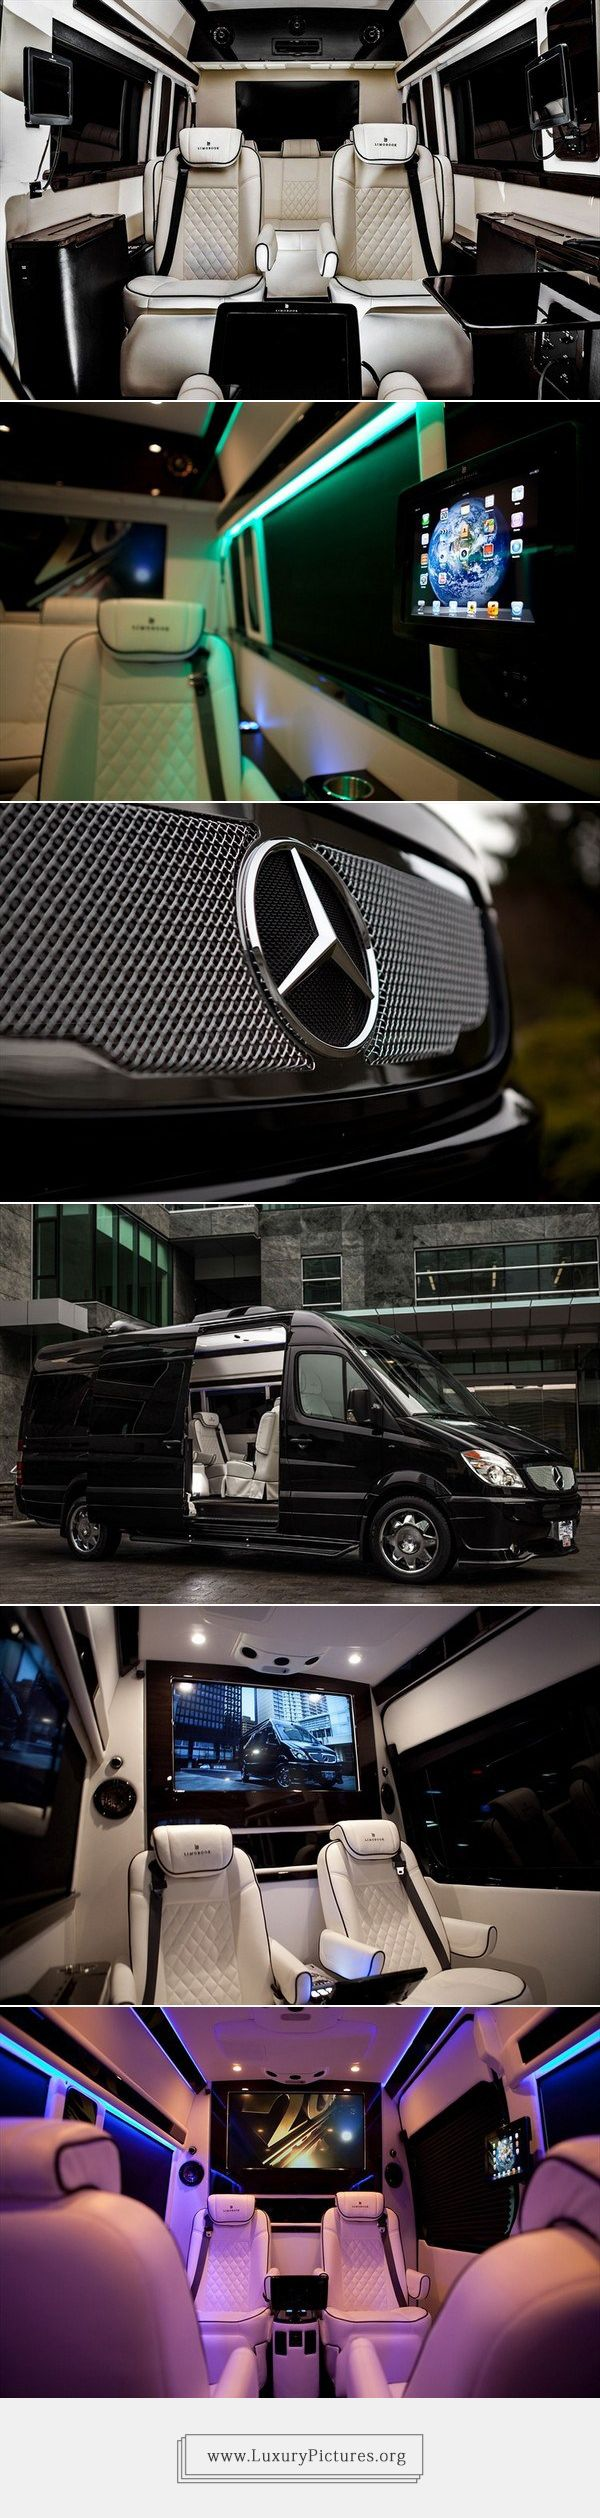 Mercedes-Benz Sprinter 2500 Crew Luxury Van